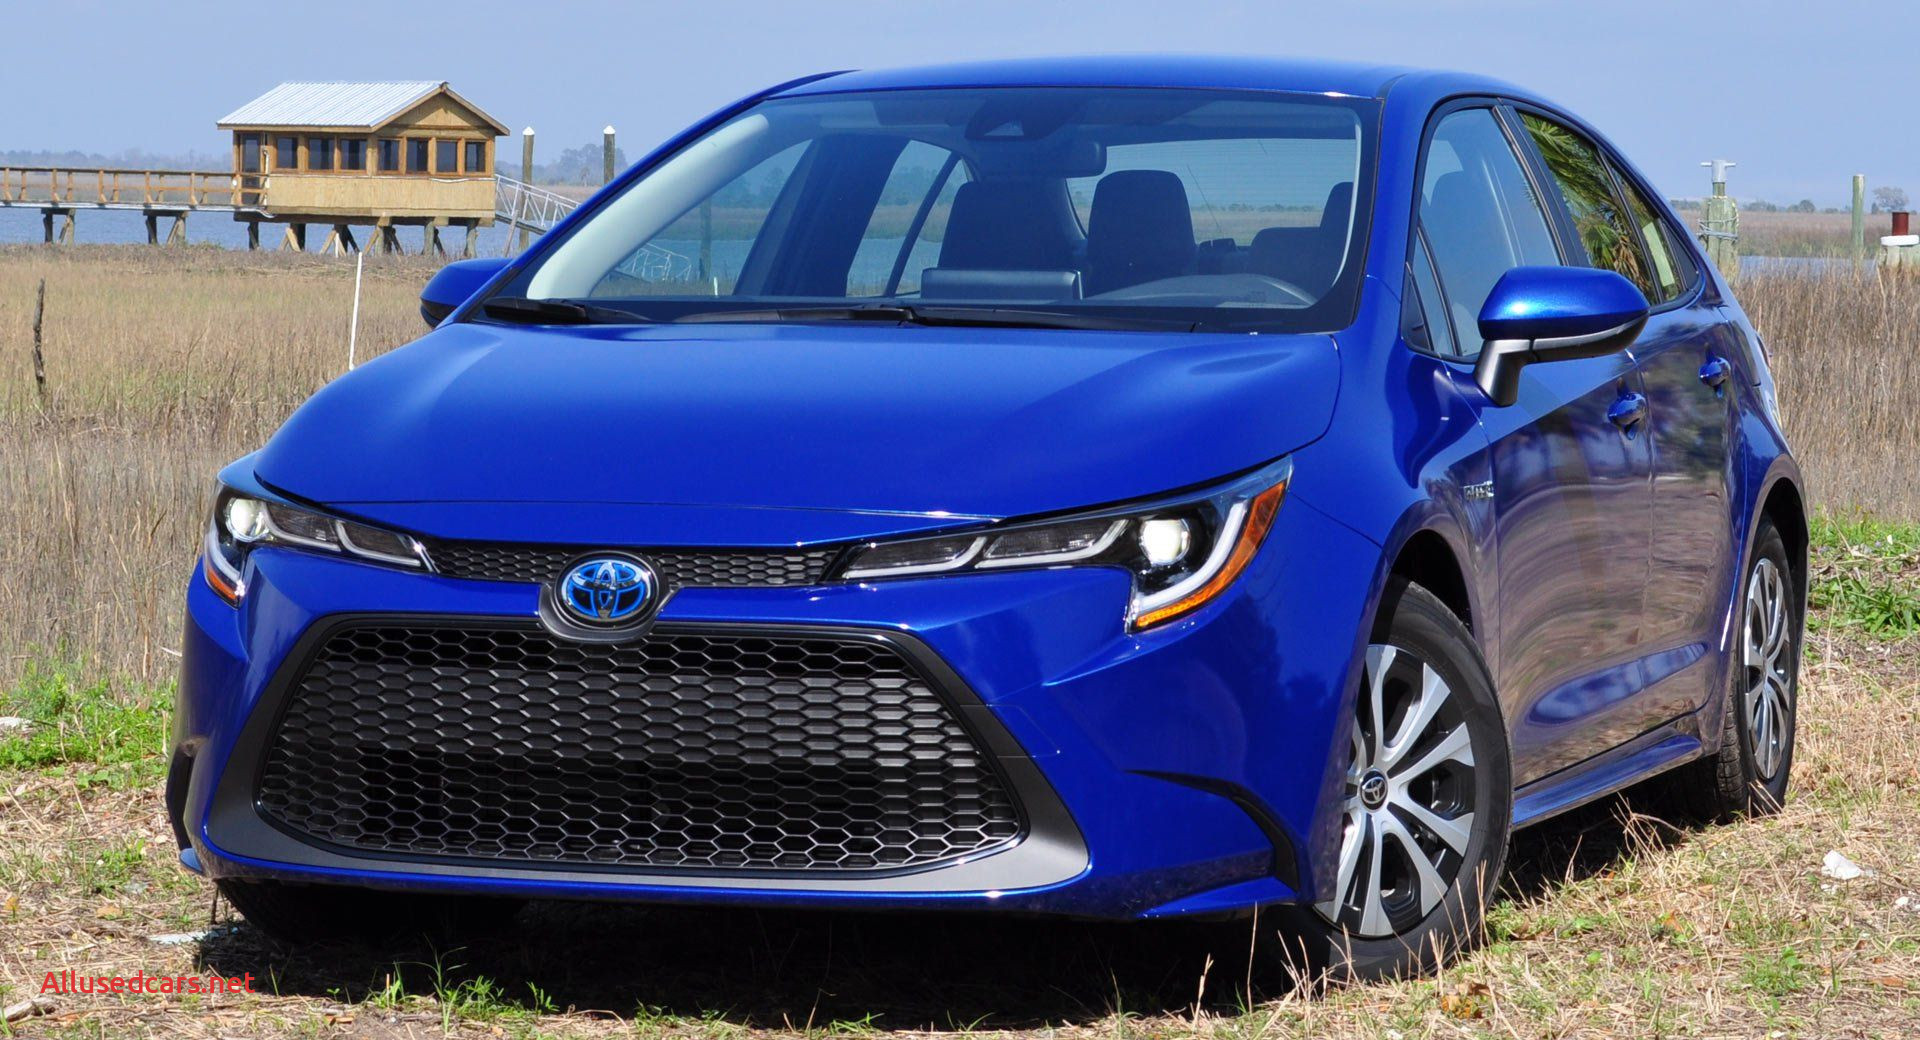 Toyota Corolla Sport Unique Driven 2020 toyota Corolla Hybrid is A Prius without the